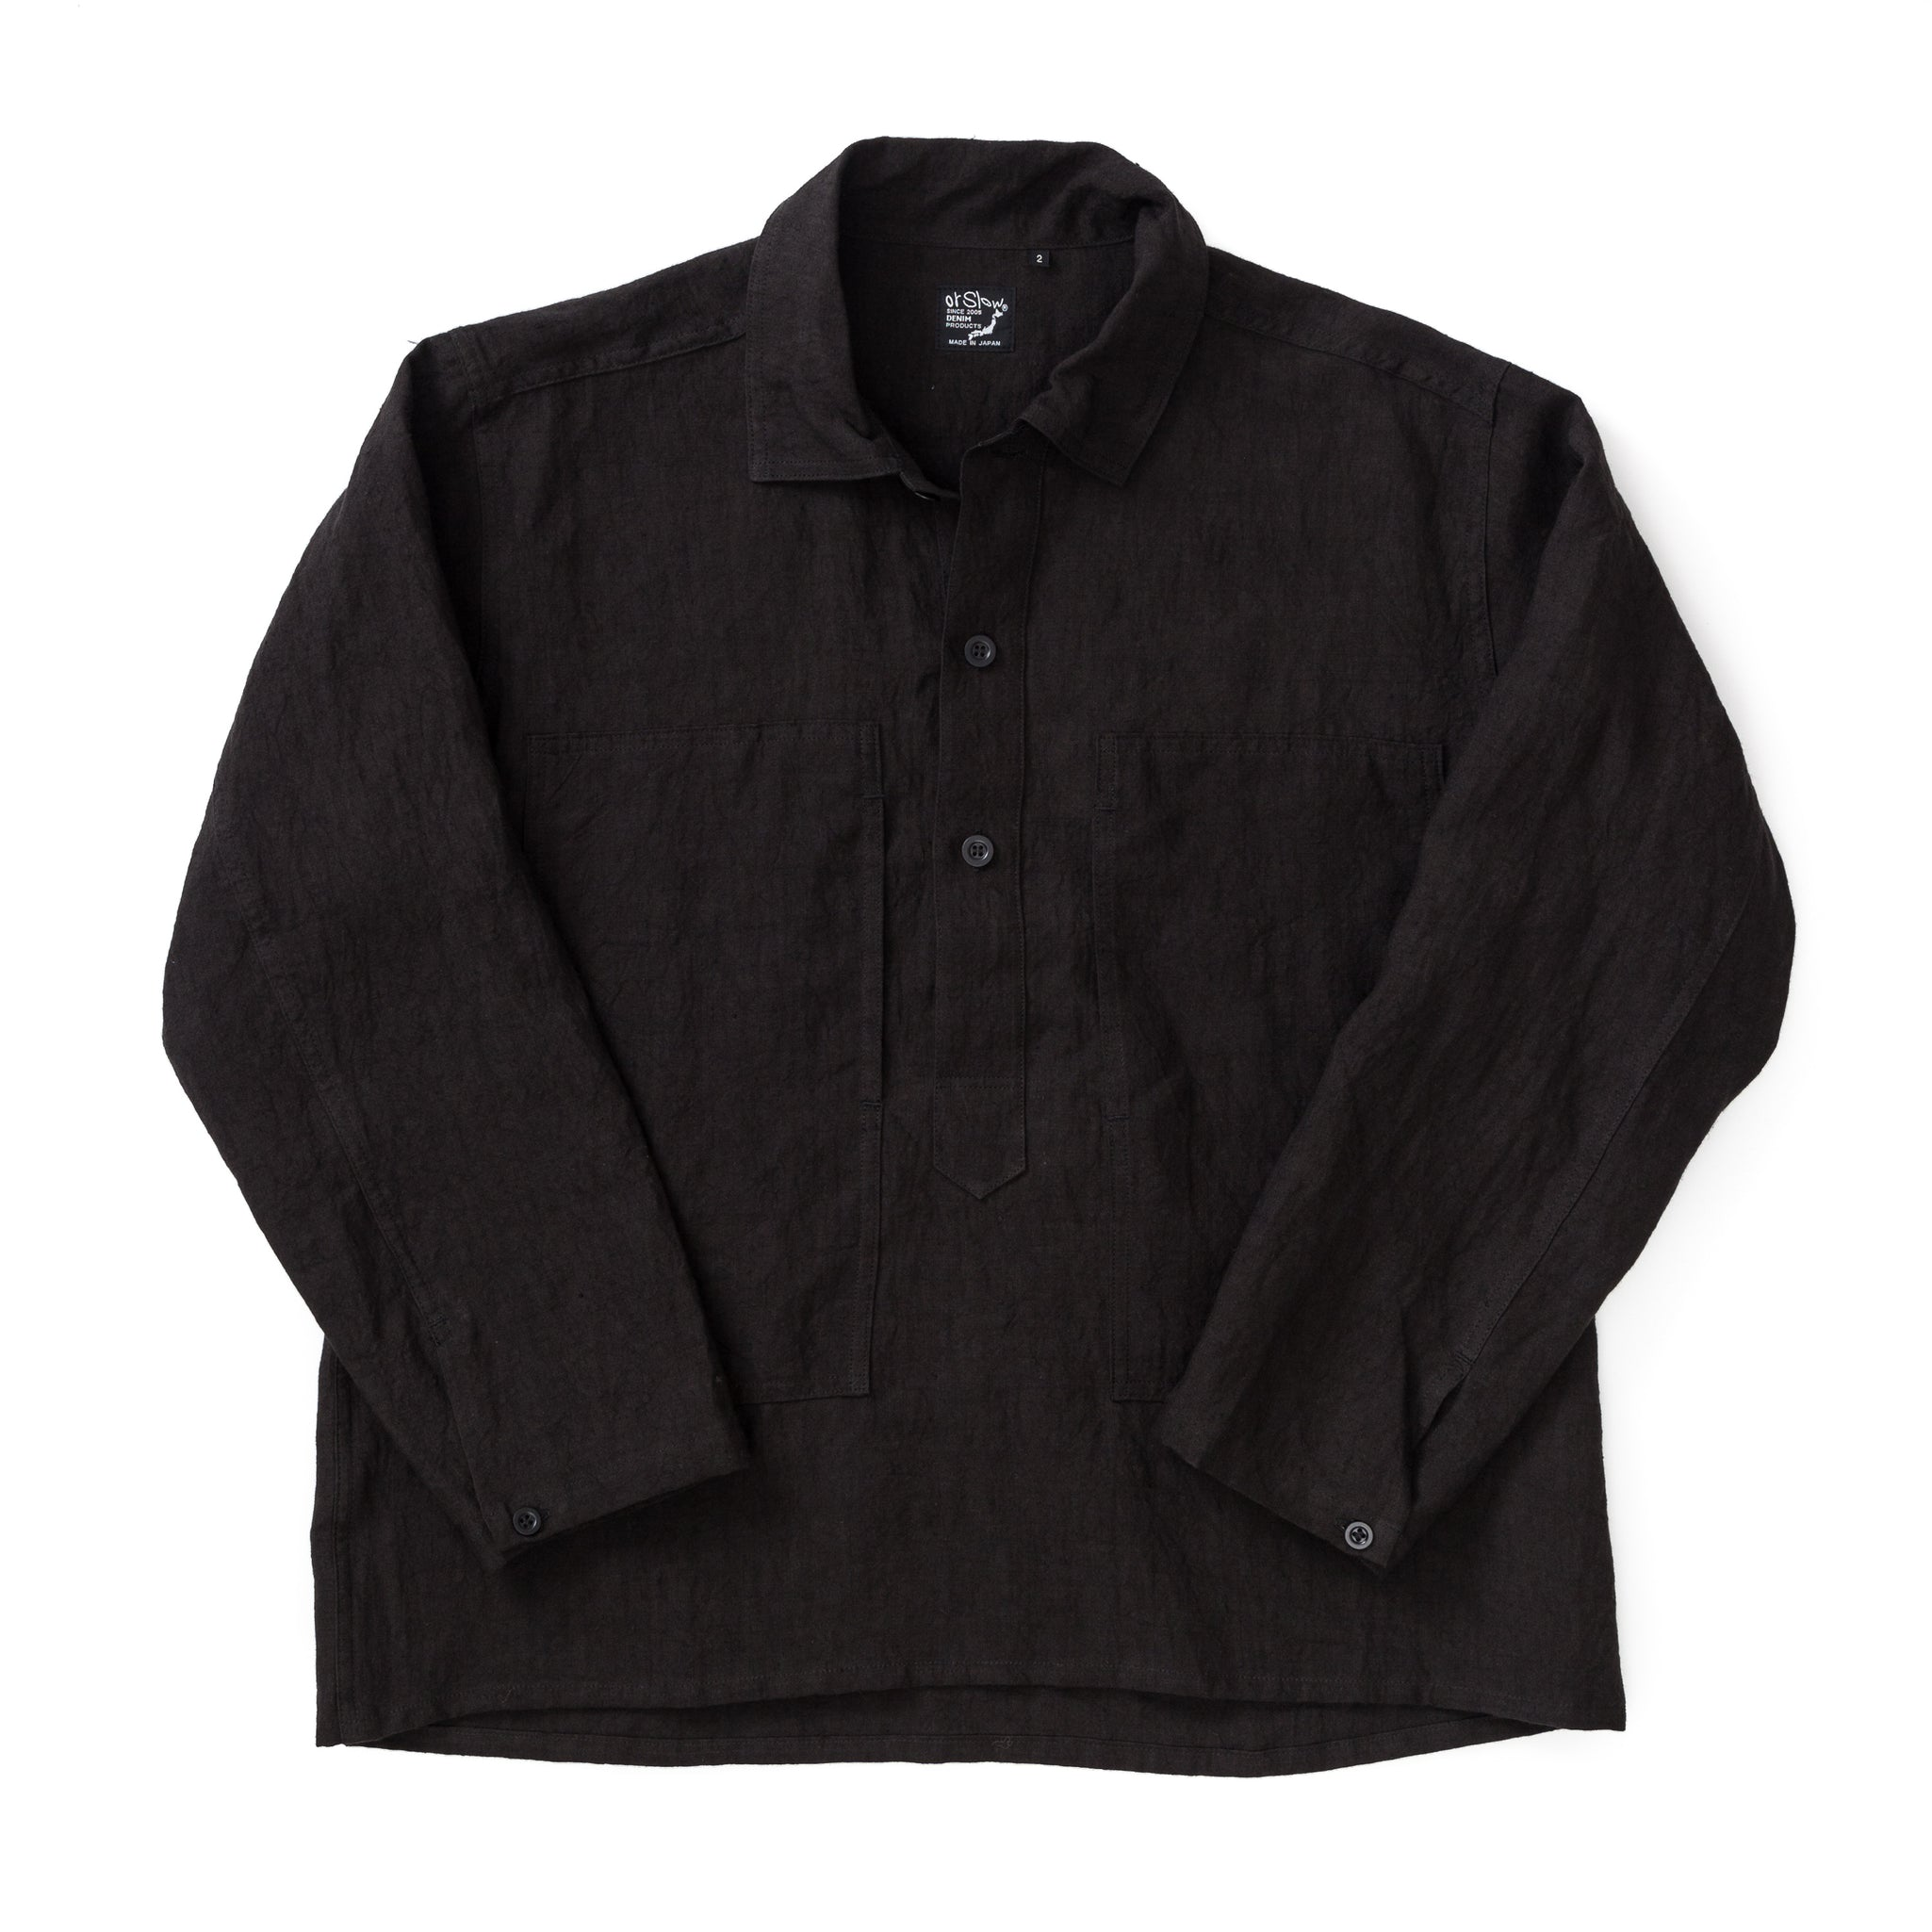 PW Pullover Shirt Jacket